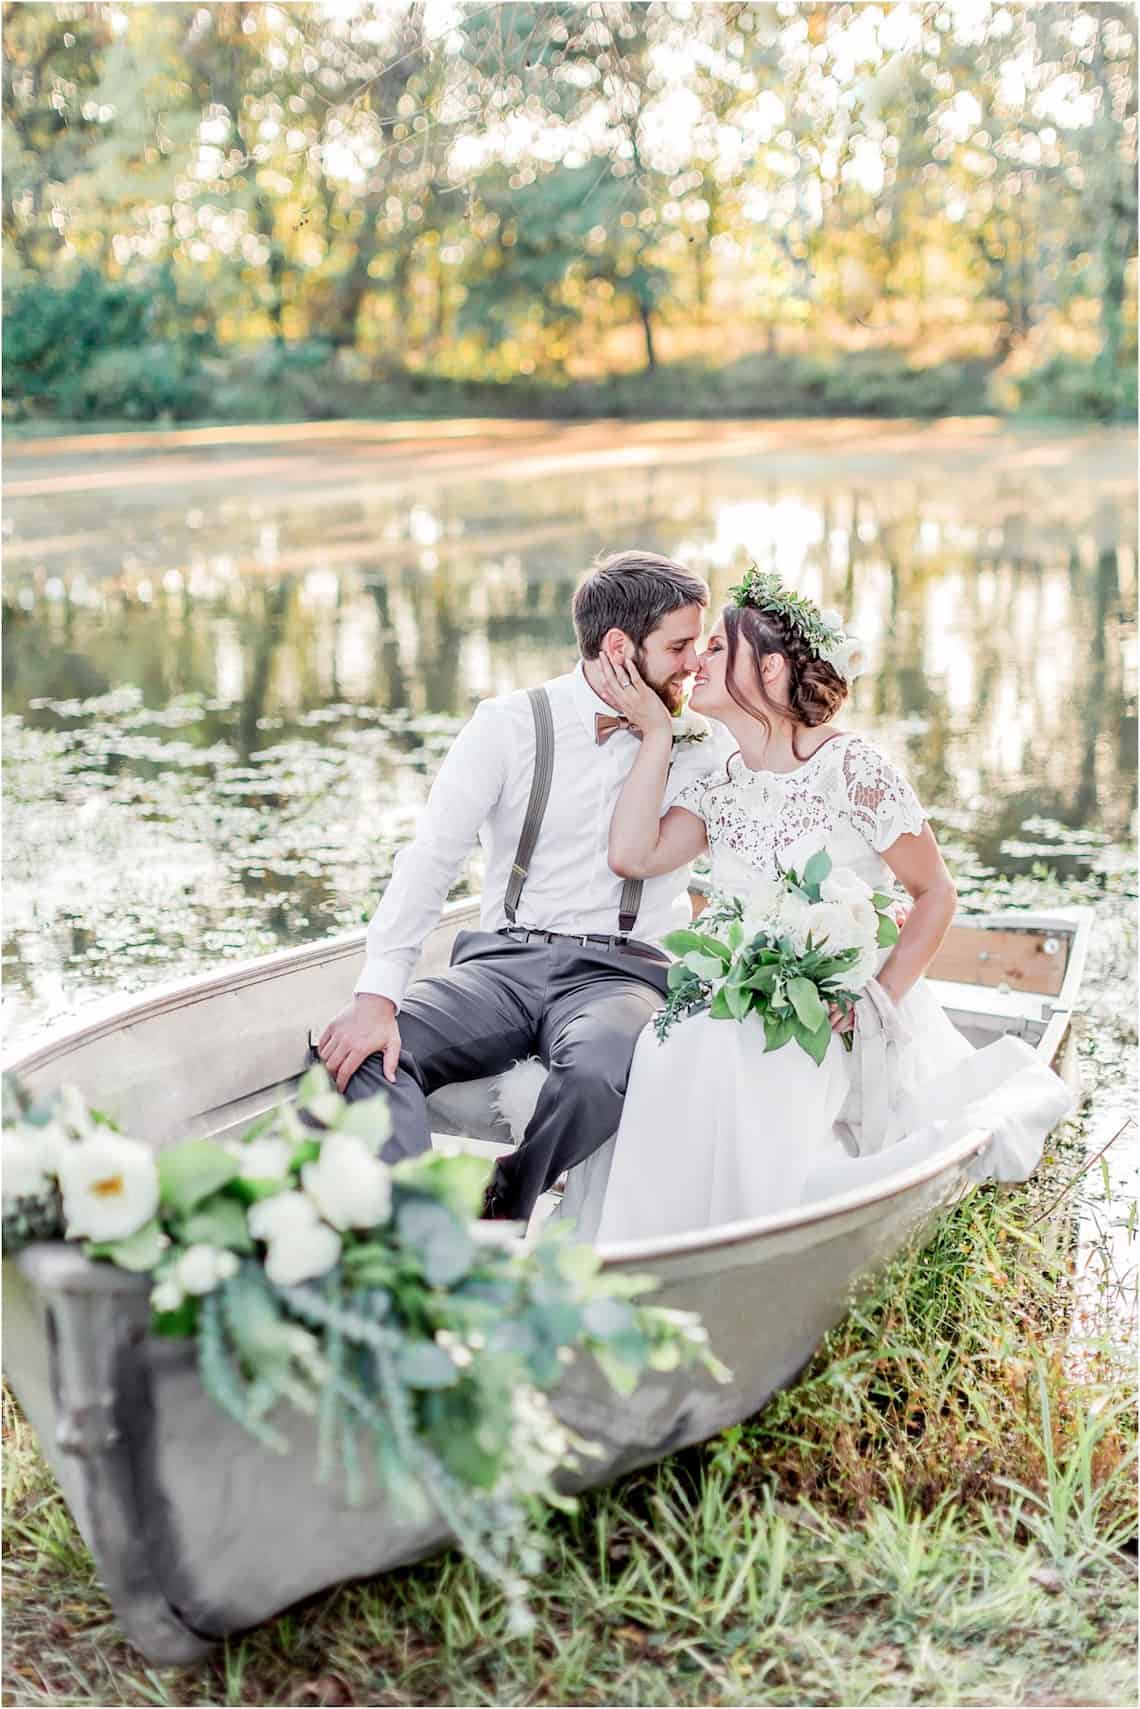 Bride and Groom Snuggling in a Boat on a Lake